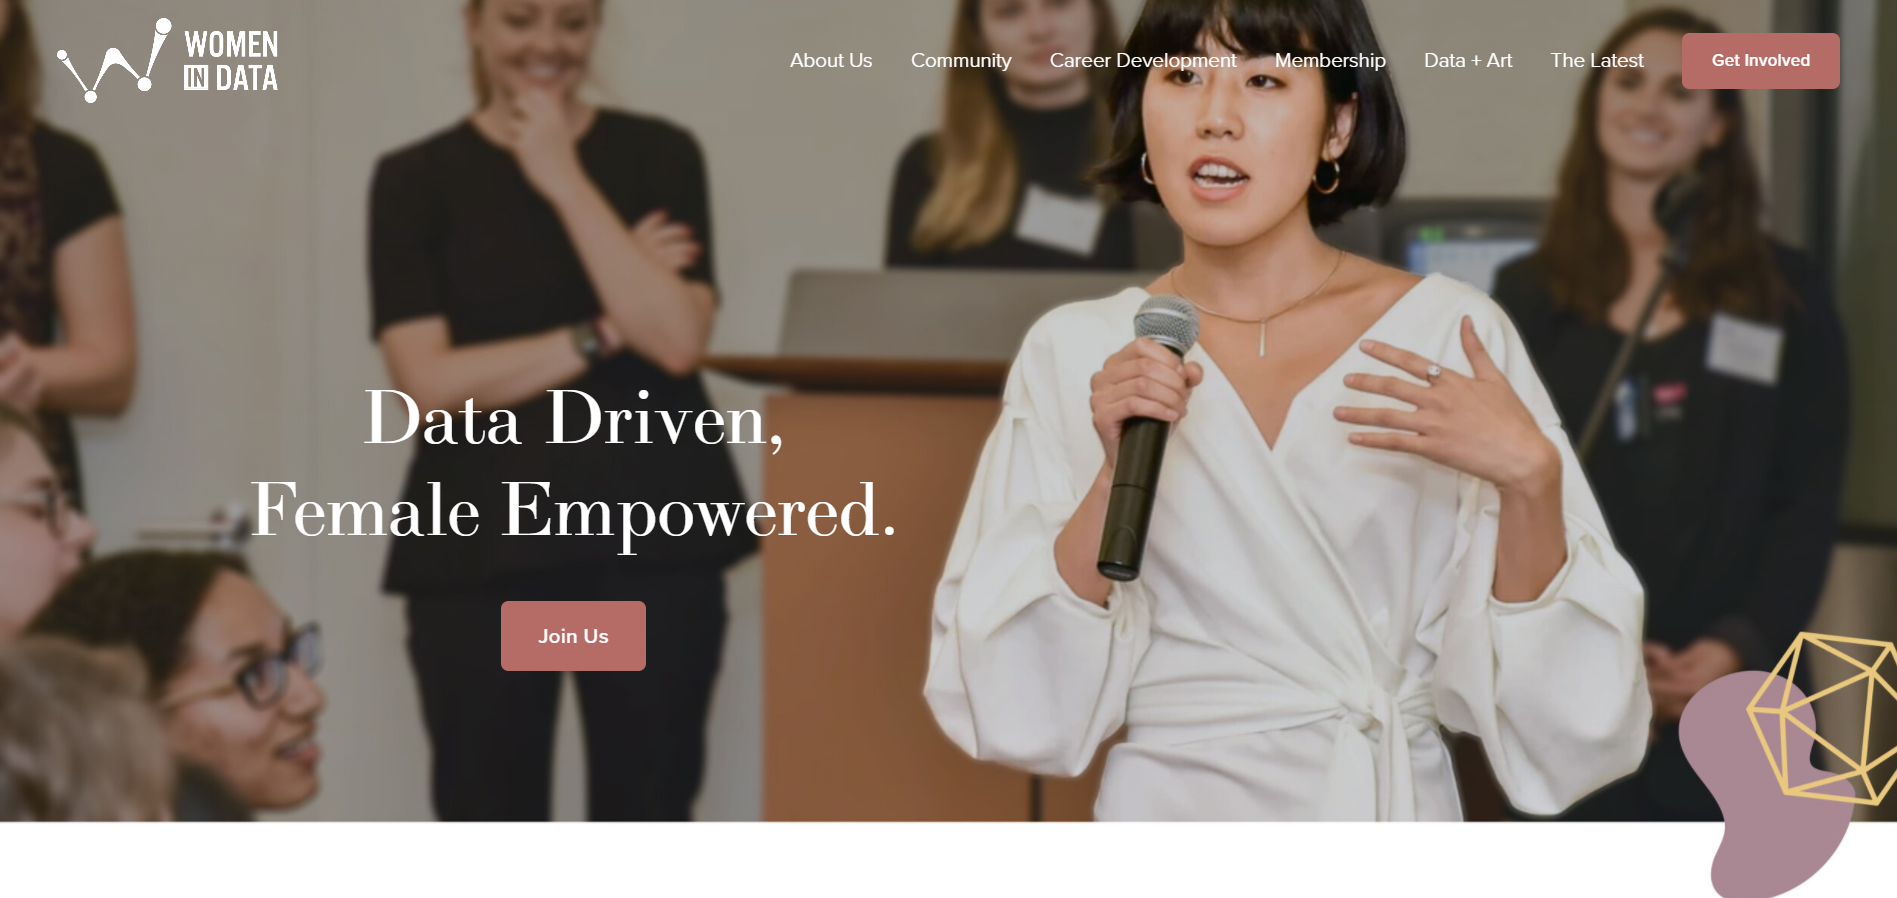 Women in Data is an international non-profit organization started in 2015 whose mission is to bring women together for career advancement and an opportunity to uplift one another